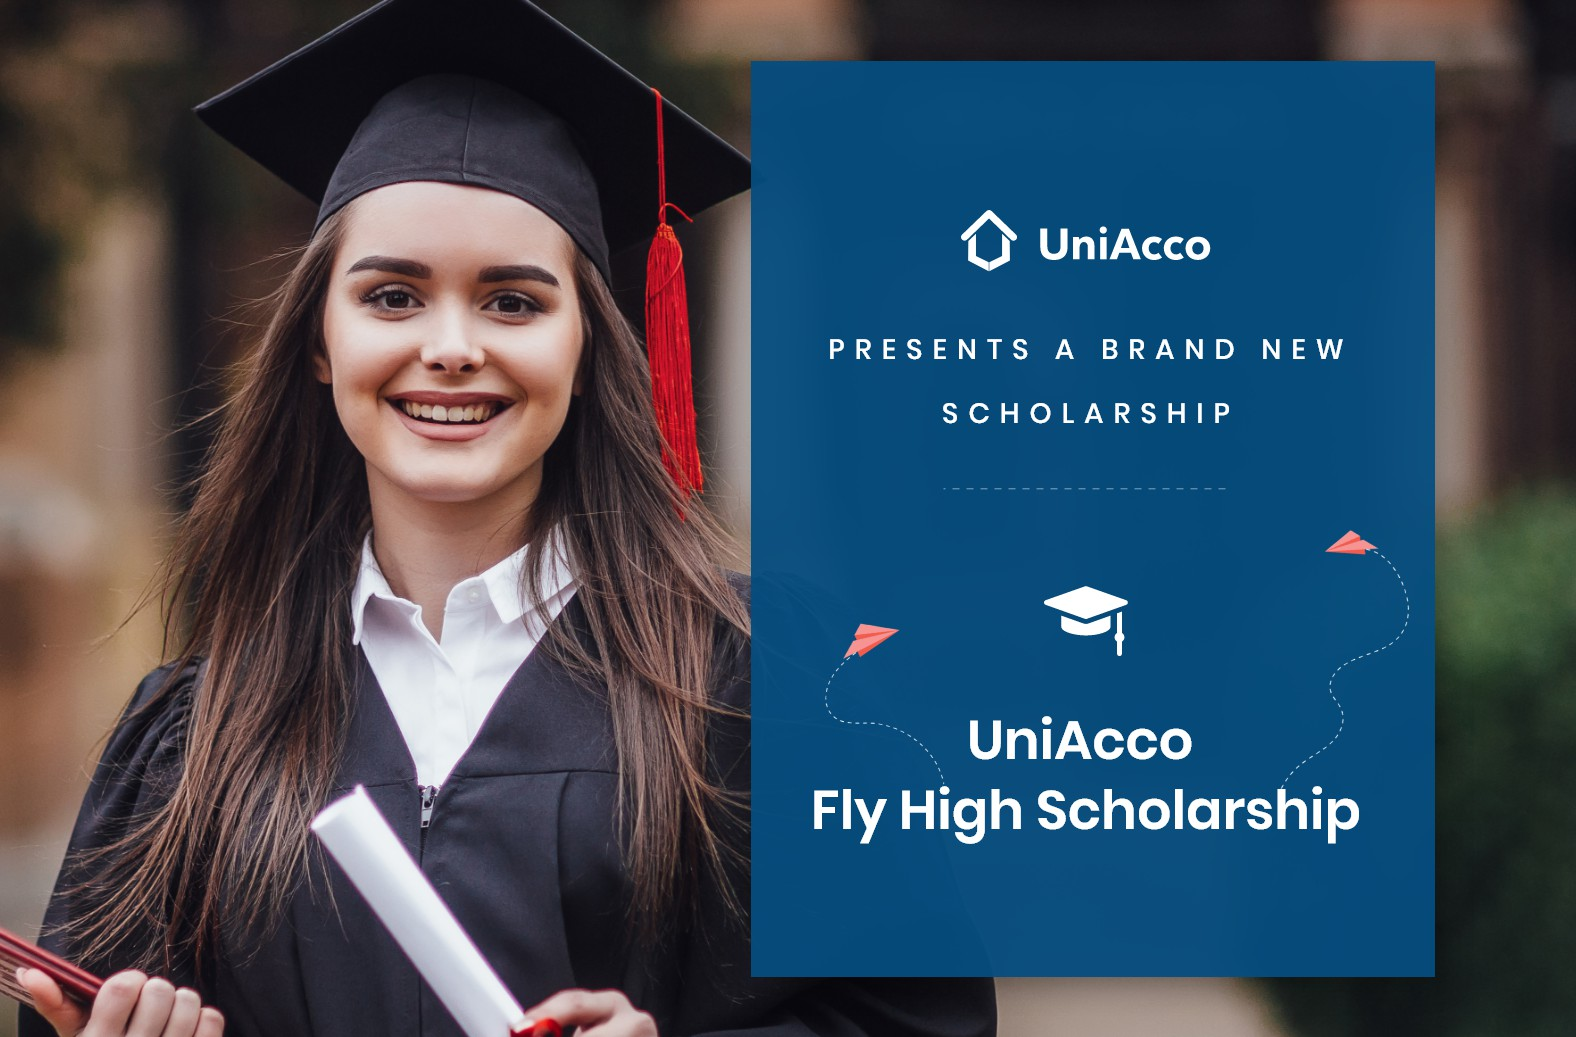 UniAcco's Brand New Scholarship – The UniAcco Fly High Scholarship